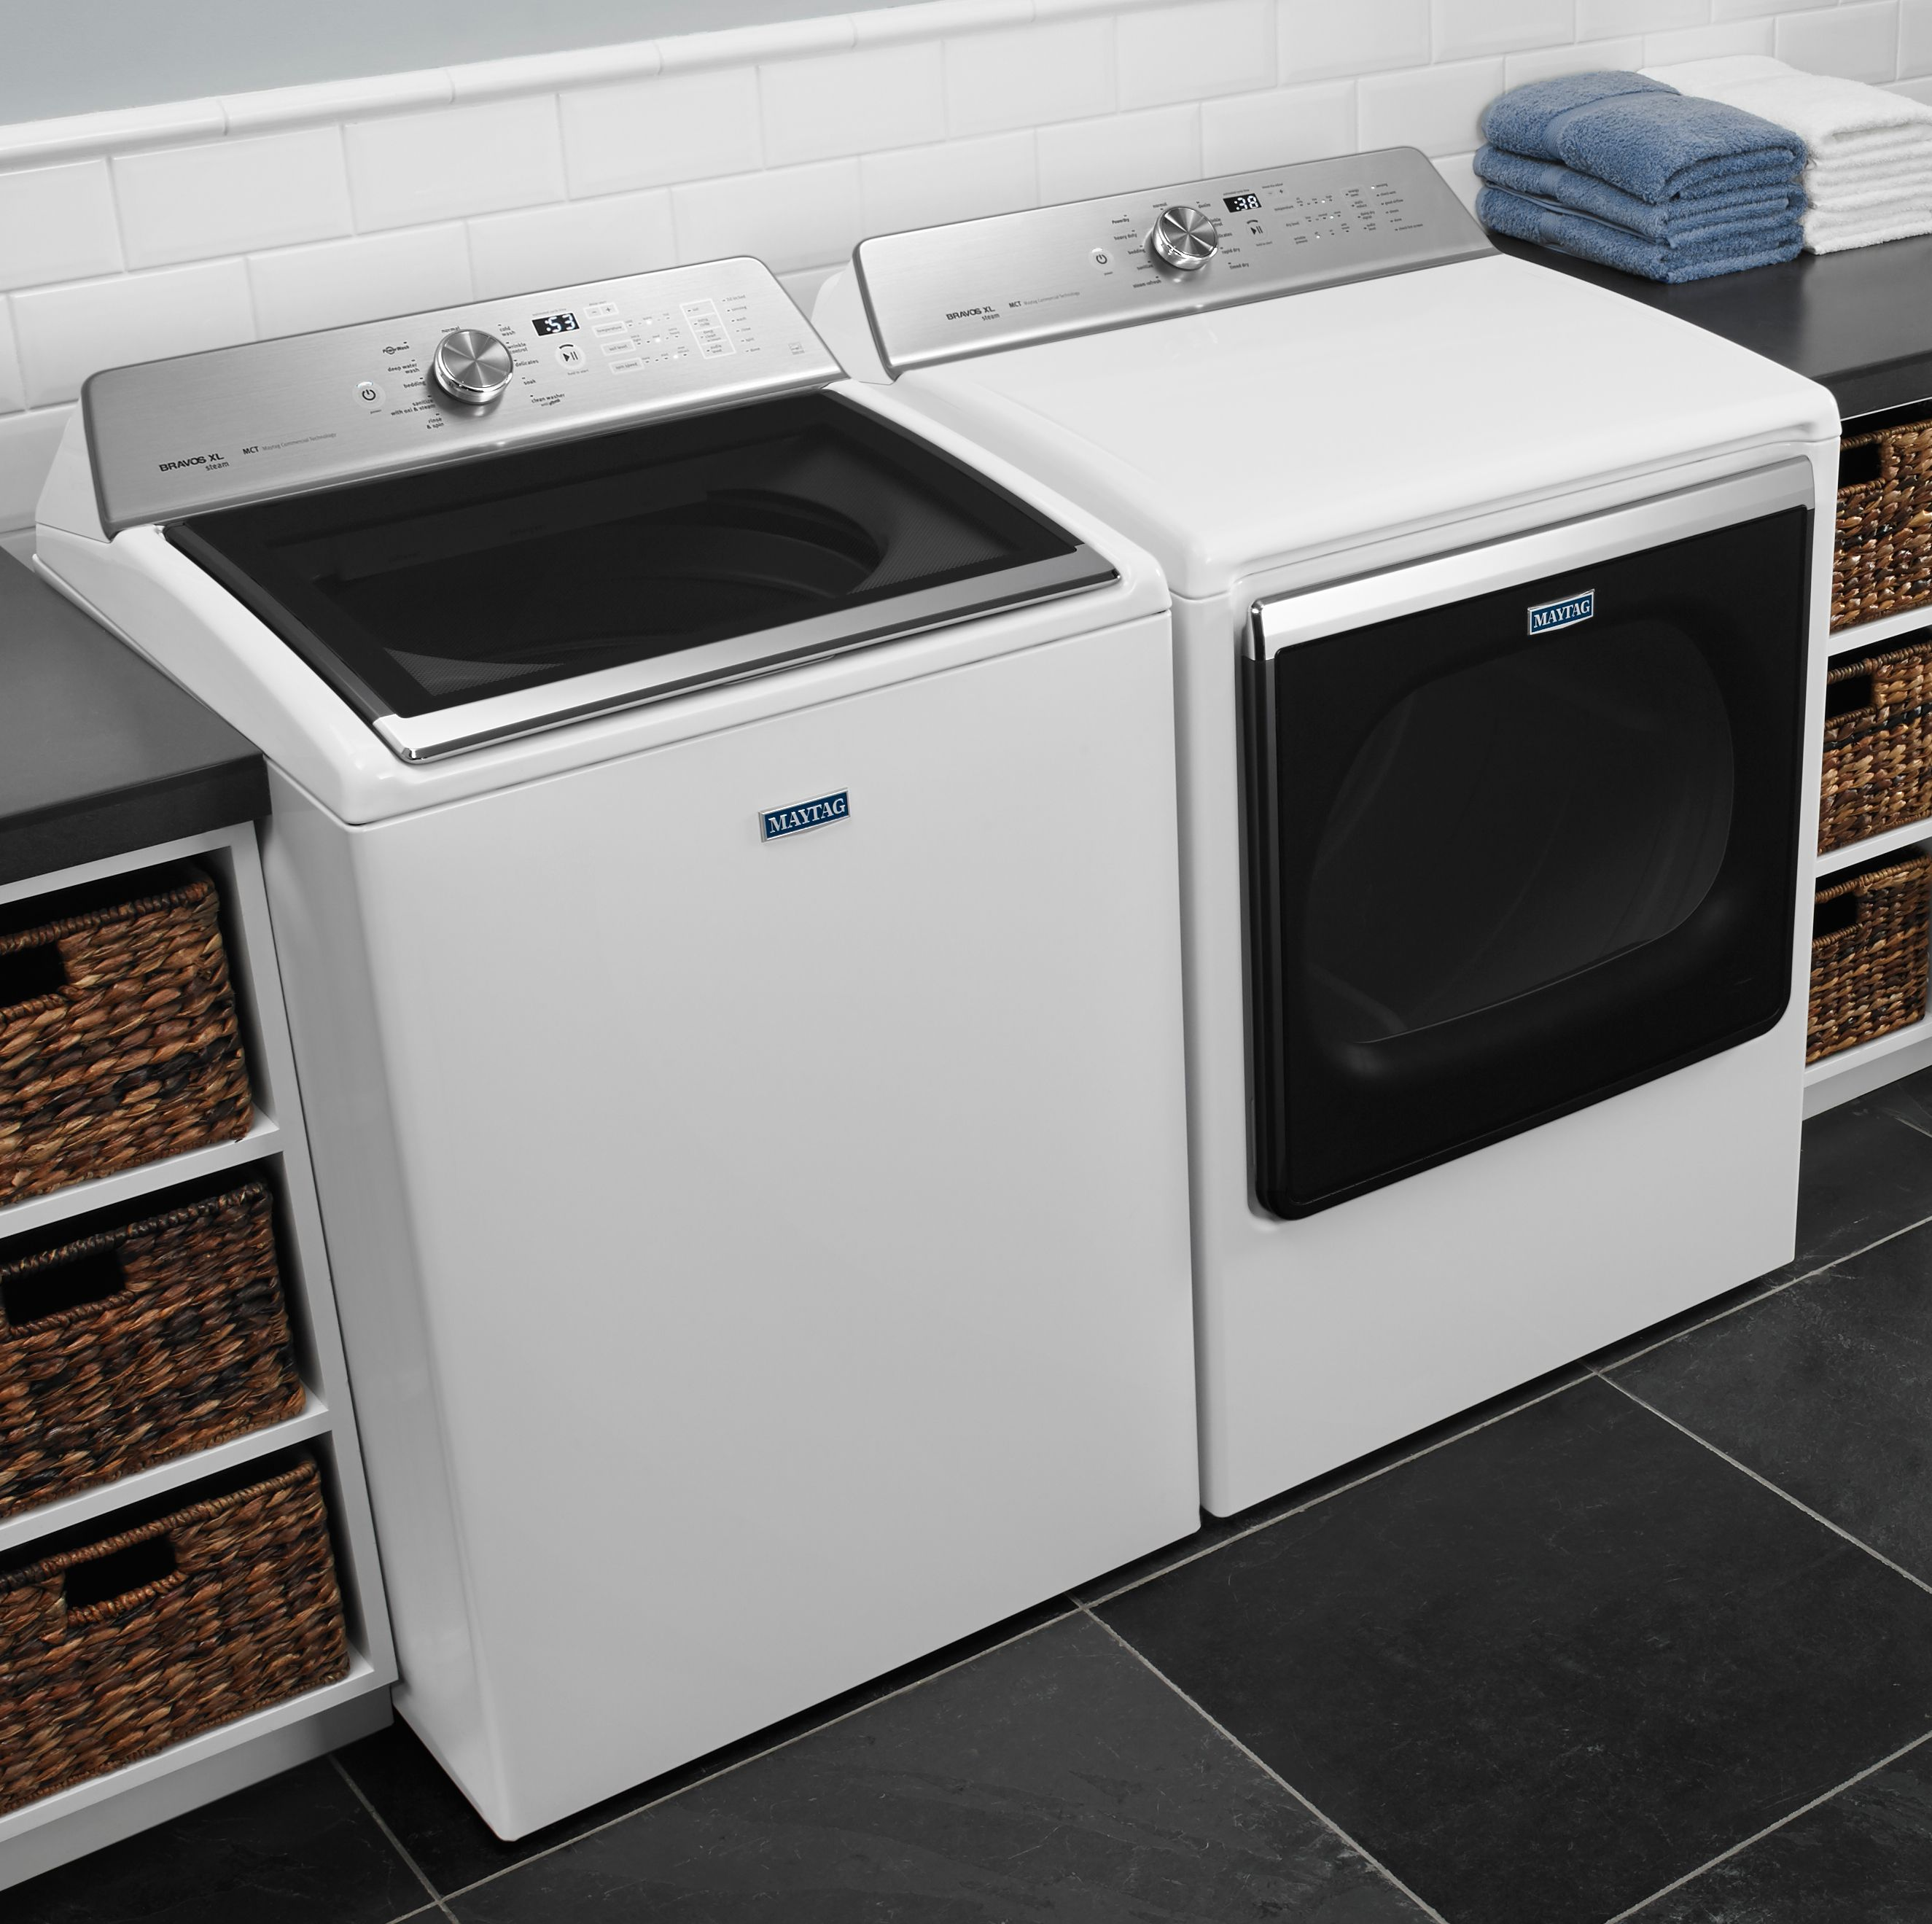 Make Light Work Of Heavy Laundry Loads With This Maytag Bravos Gas Steam Dryer When Paired With The Coordin Steam Dryer Steam Washer Maytag Washer And Dryer